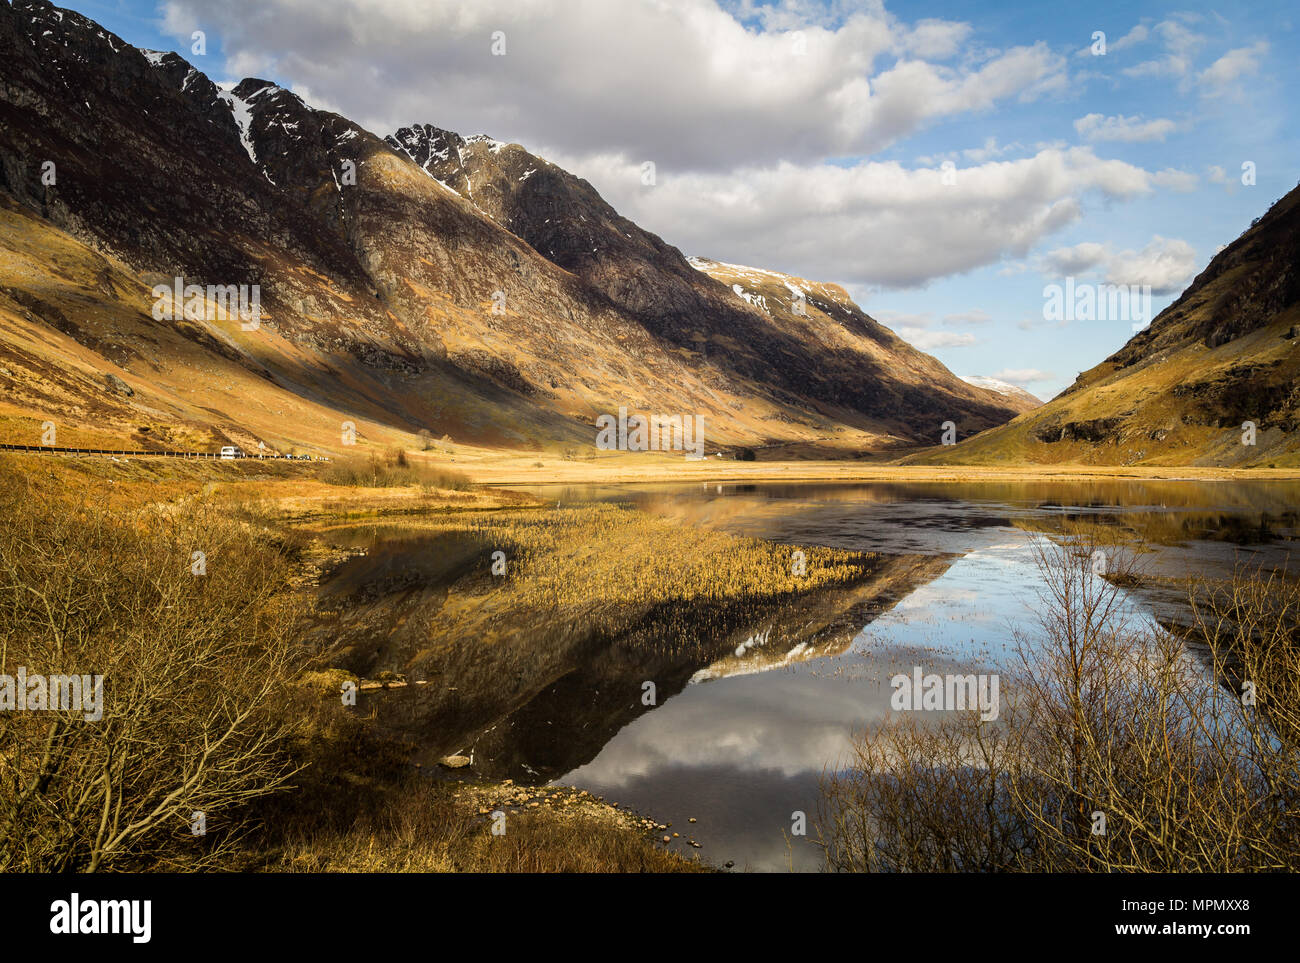 Loch Achtriochtan on a beautiful day reflecting in the water. - Stock Image